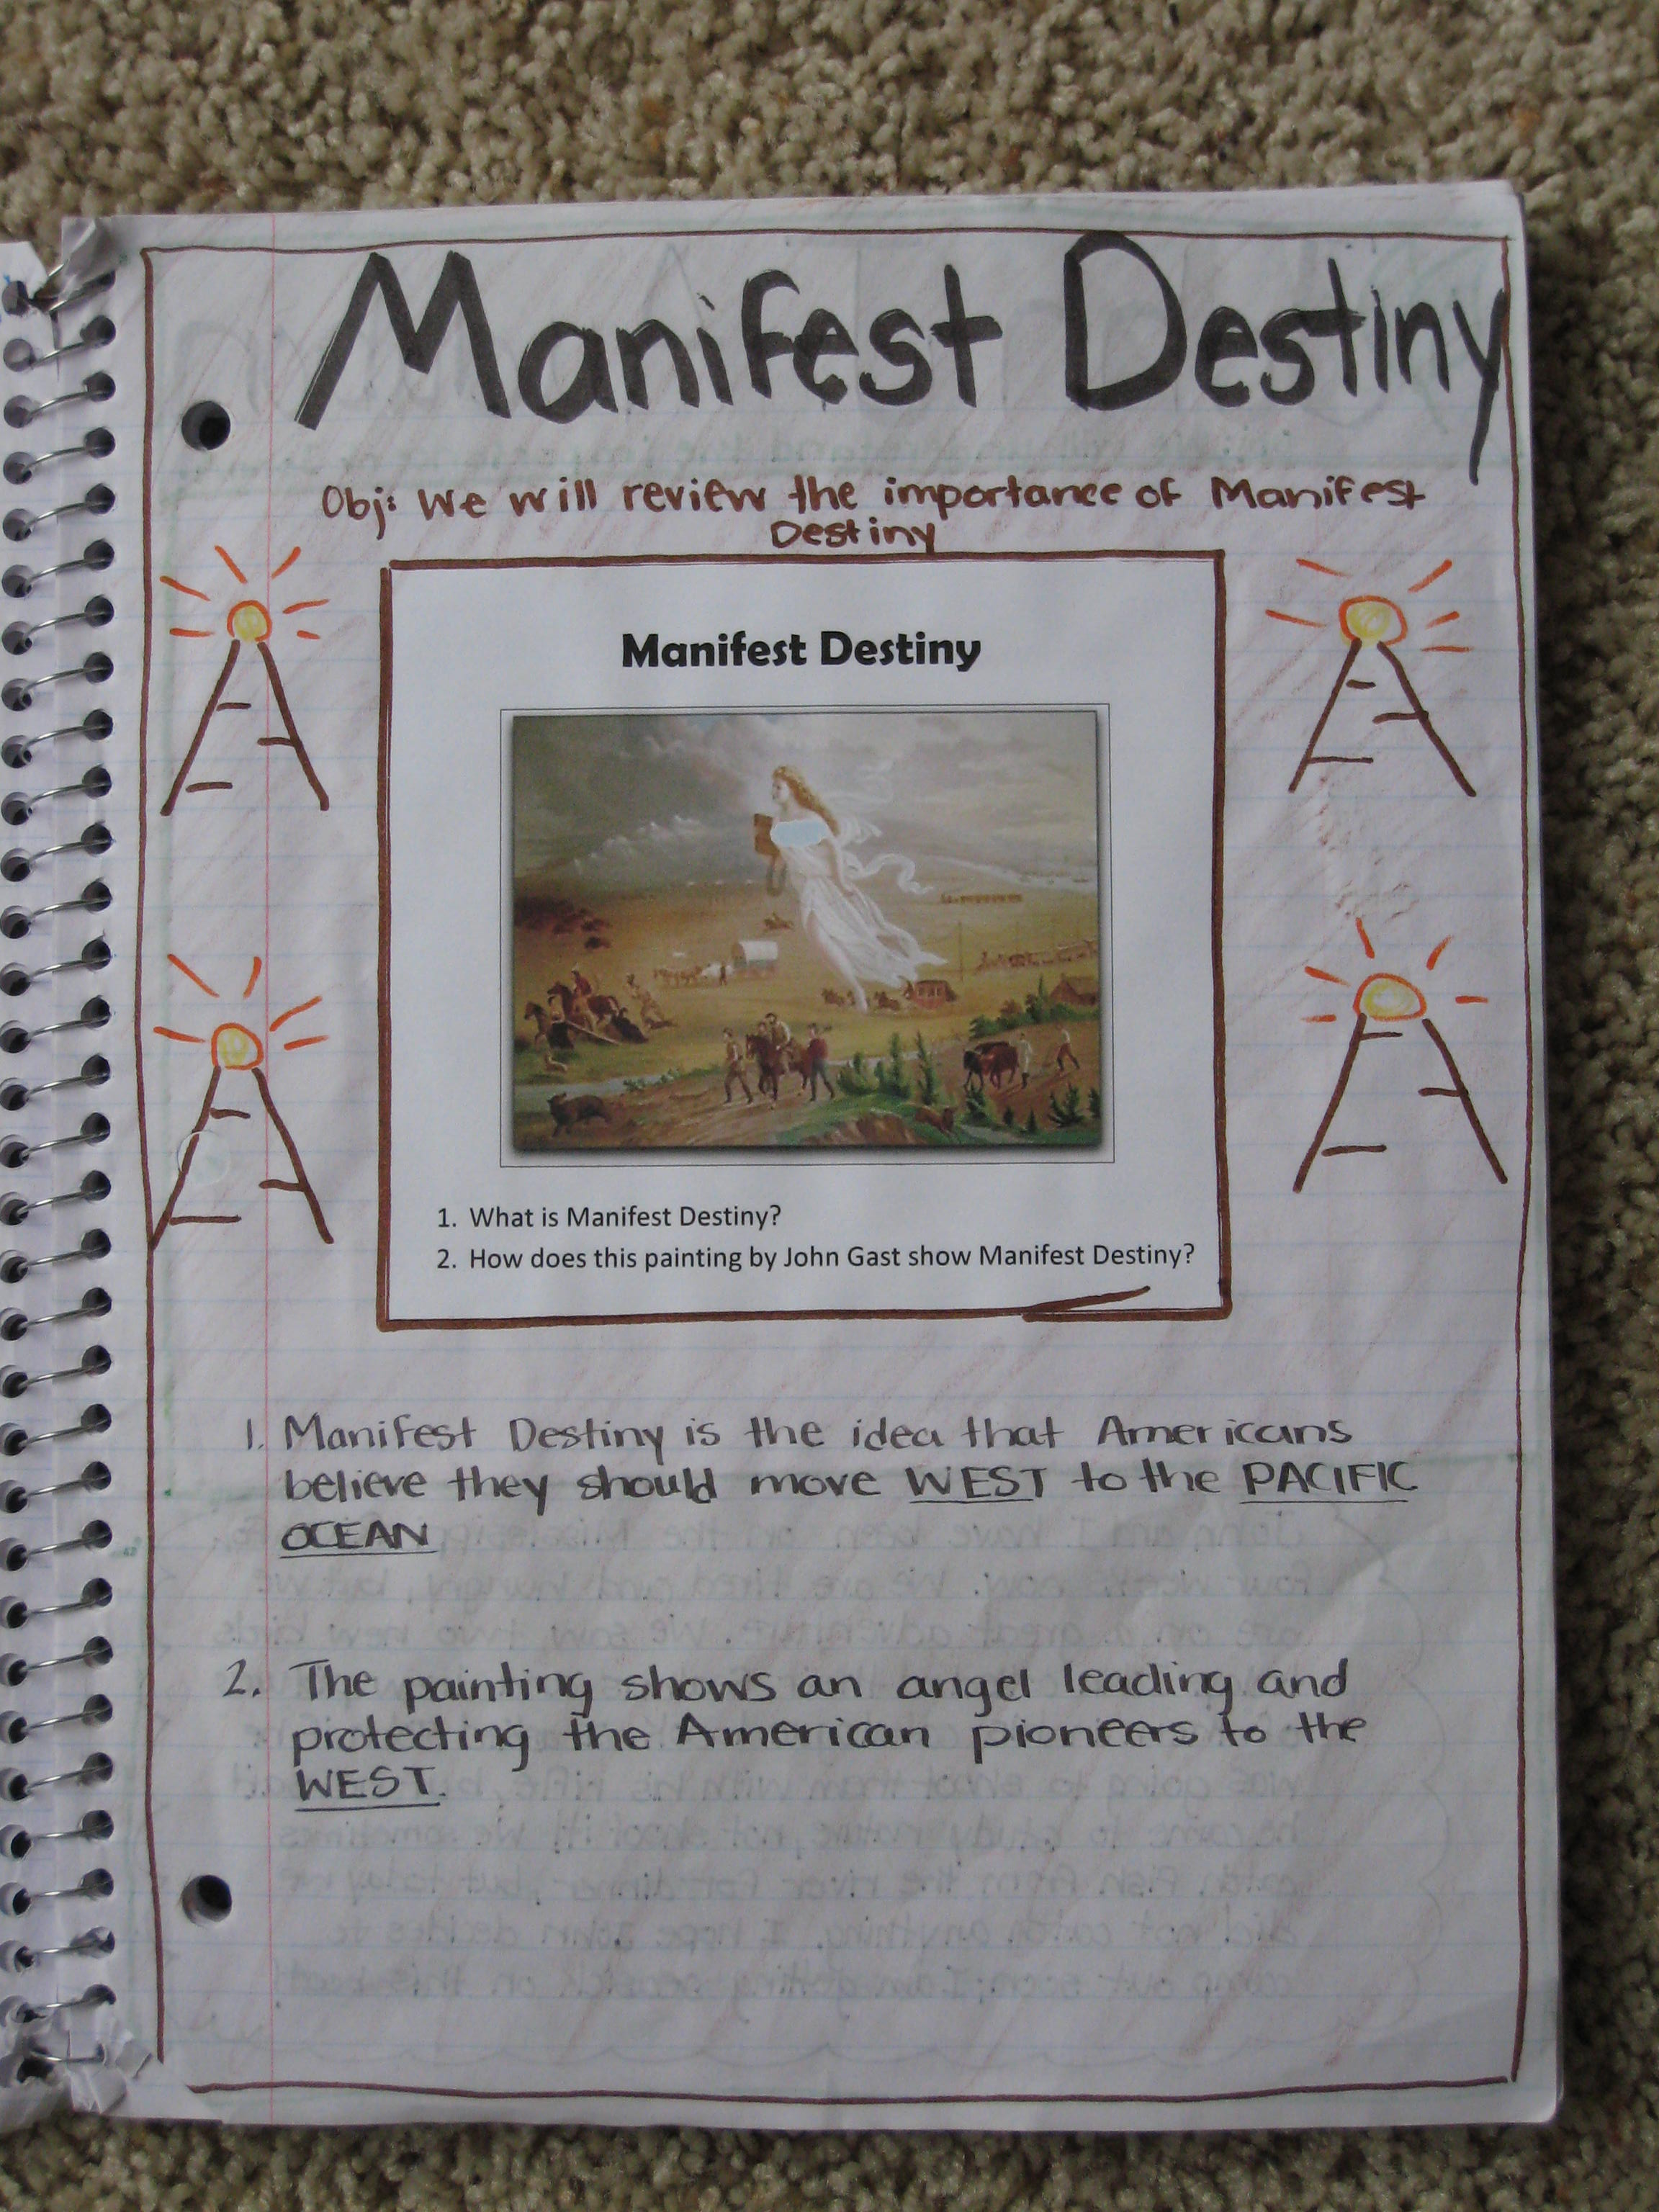 ap chapter 13 manifest destiny Ap notes, outlines, study guides, vocabulary, practice exams and more   manifest destiny is the belief that americans had the right, or even the duty,  in  order to accomplish this destiny, americans did not flinch at atrocities such as   crisis outline american history a survey: chapter 13 the impending crisis.